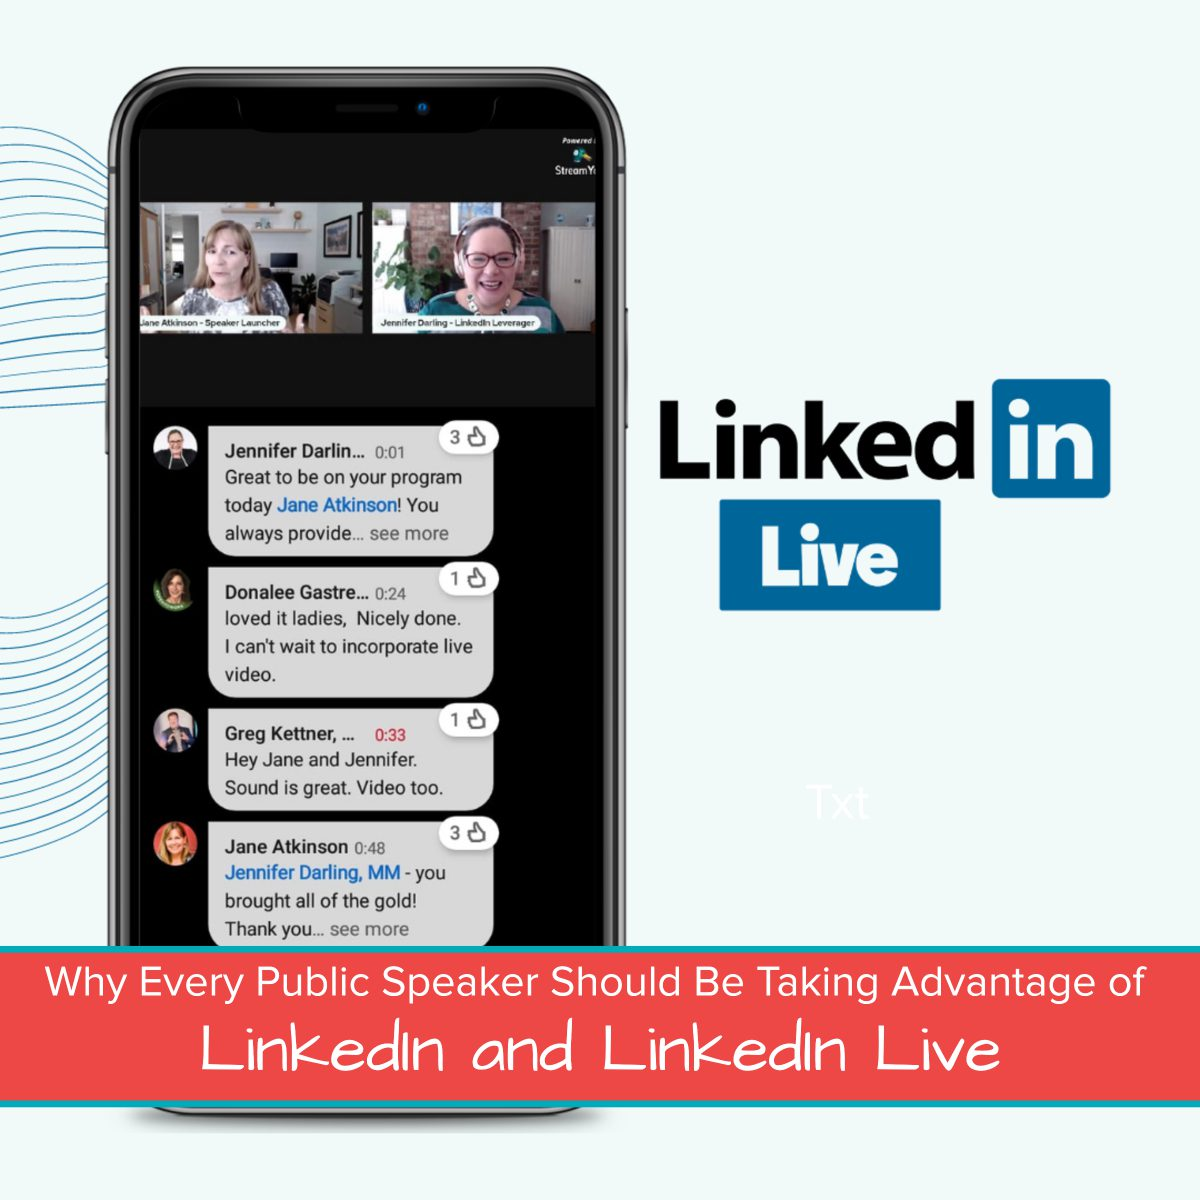 Why Every Public Speaker Should Be Taking Advantage of LinkedIn and LinkedIn Live Featured Image